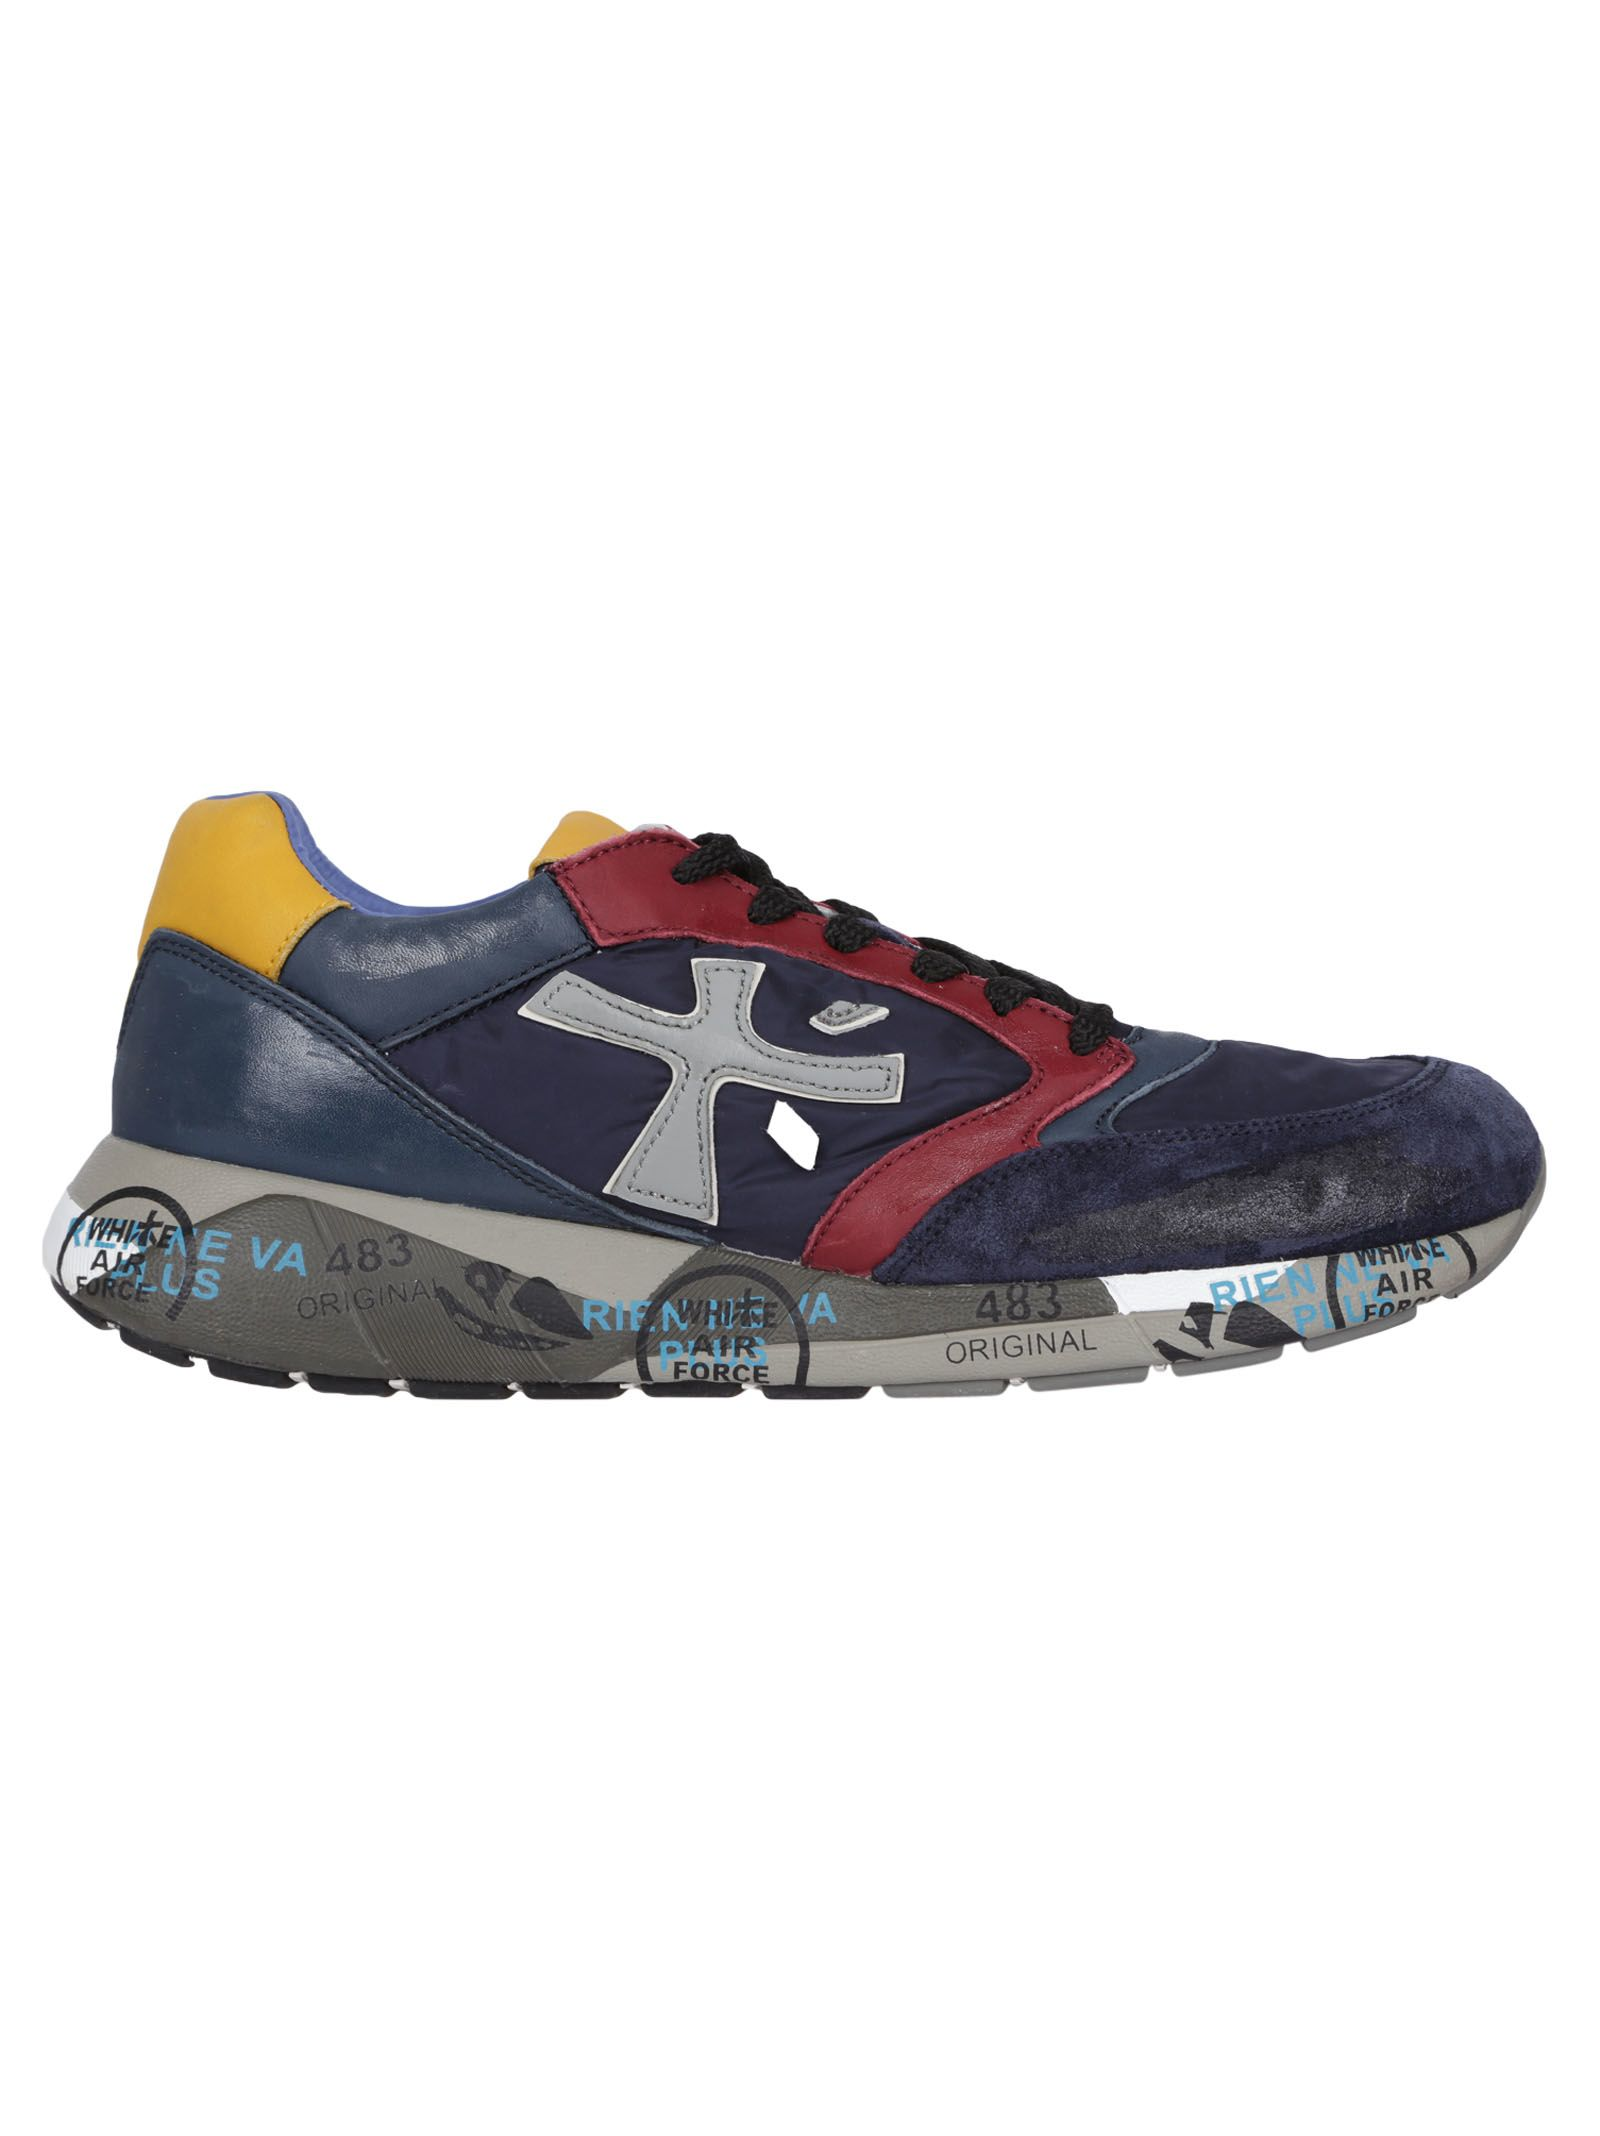 PREMIATA Vintage Effect Sneakers in Blue